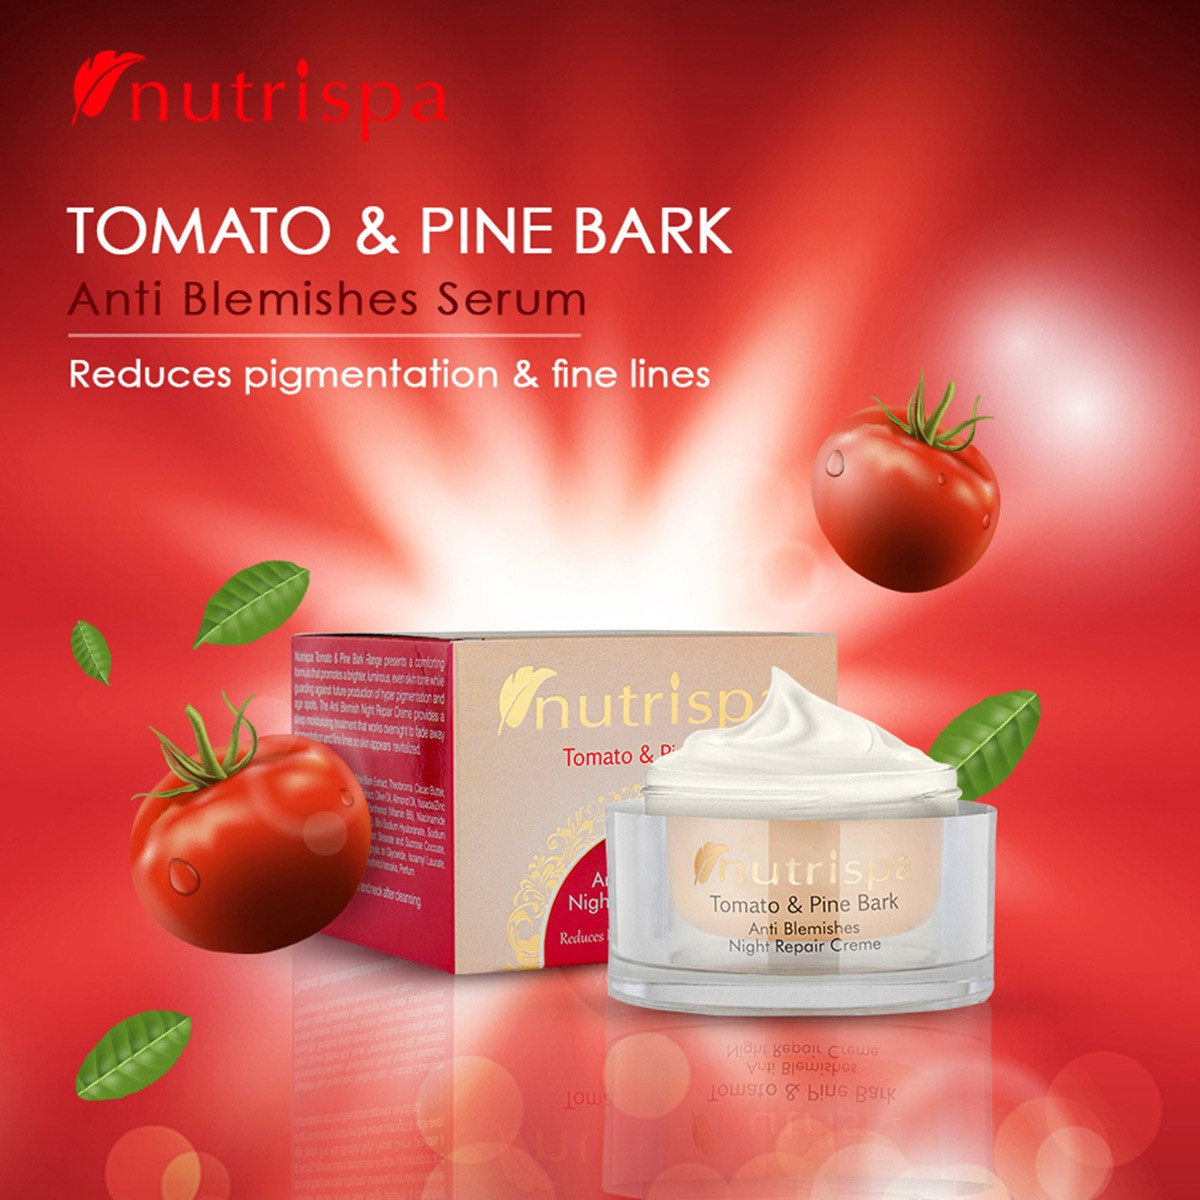 Nutrispa Tomato And Pine Bark Anti Blemishes Night Repair Cream